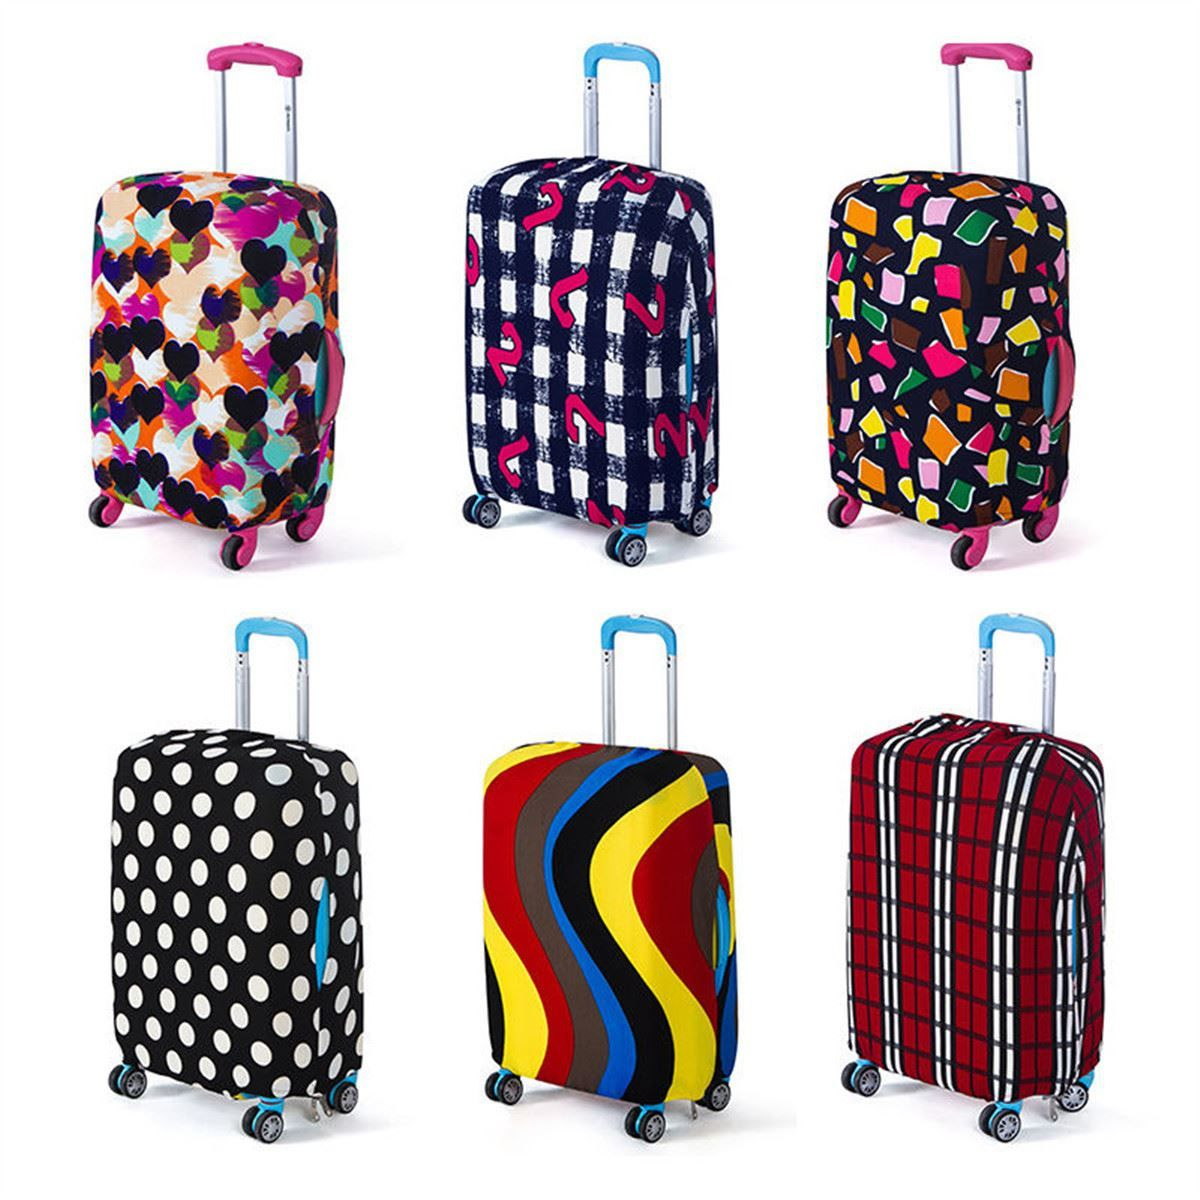 Travel Luggage Cover Protective Suitcase cover Trolley case Travel Luggage Dust cover for 18 to 20inch Bag Accessories